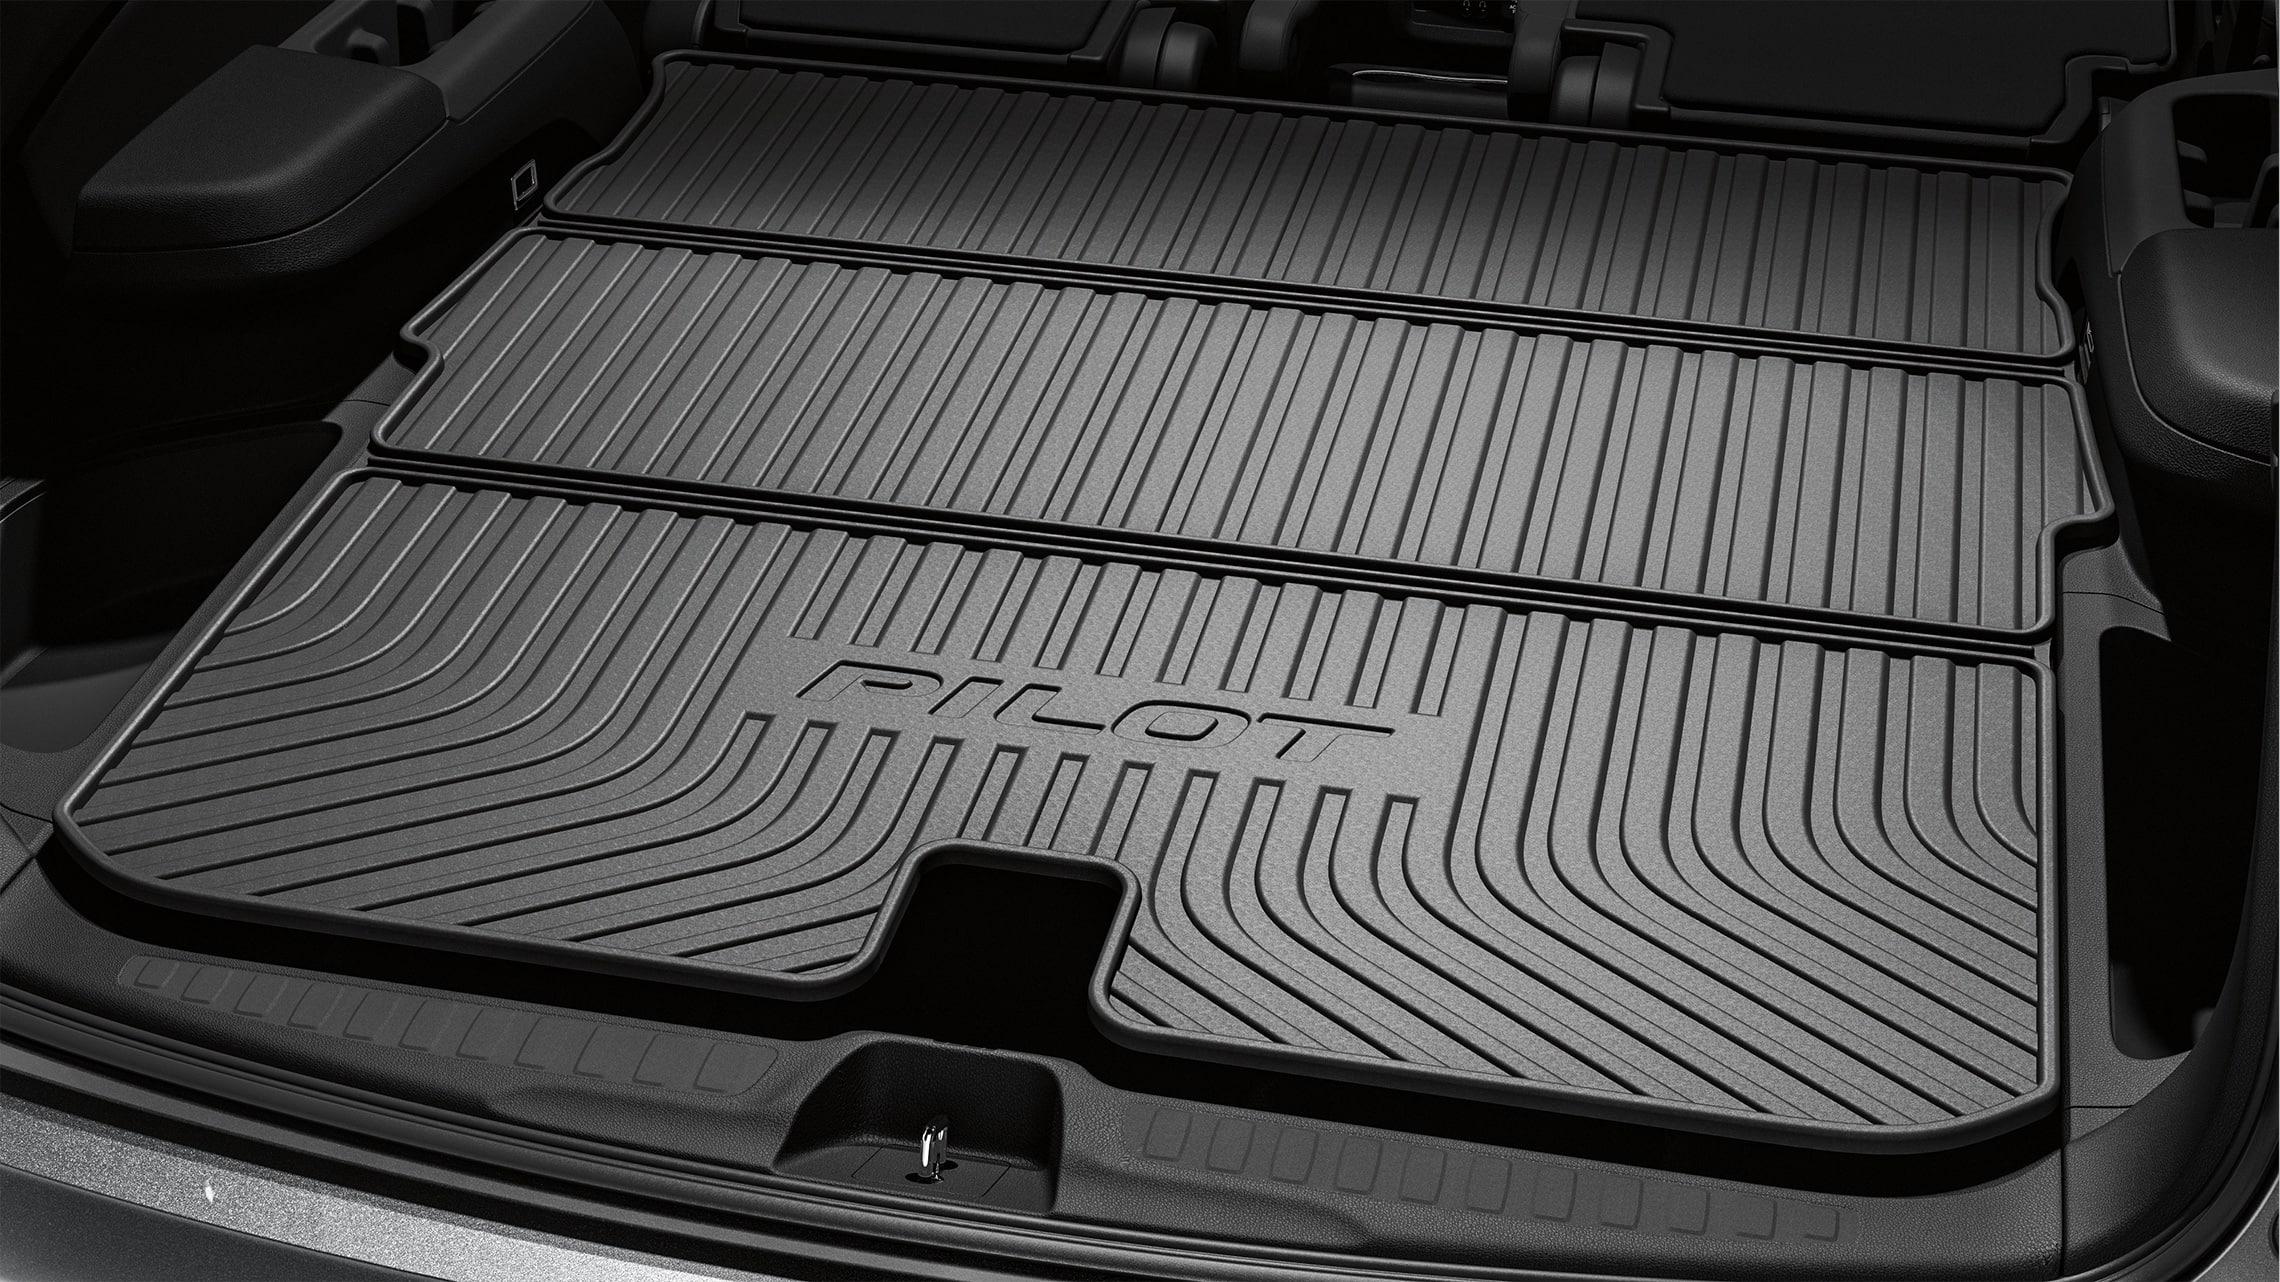 Folding cargo tray detail on 2021 Honda Pilot.